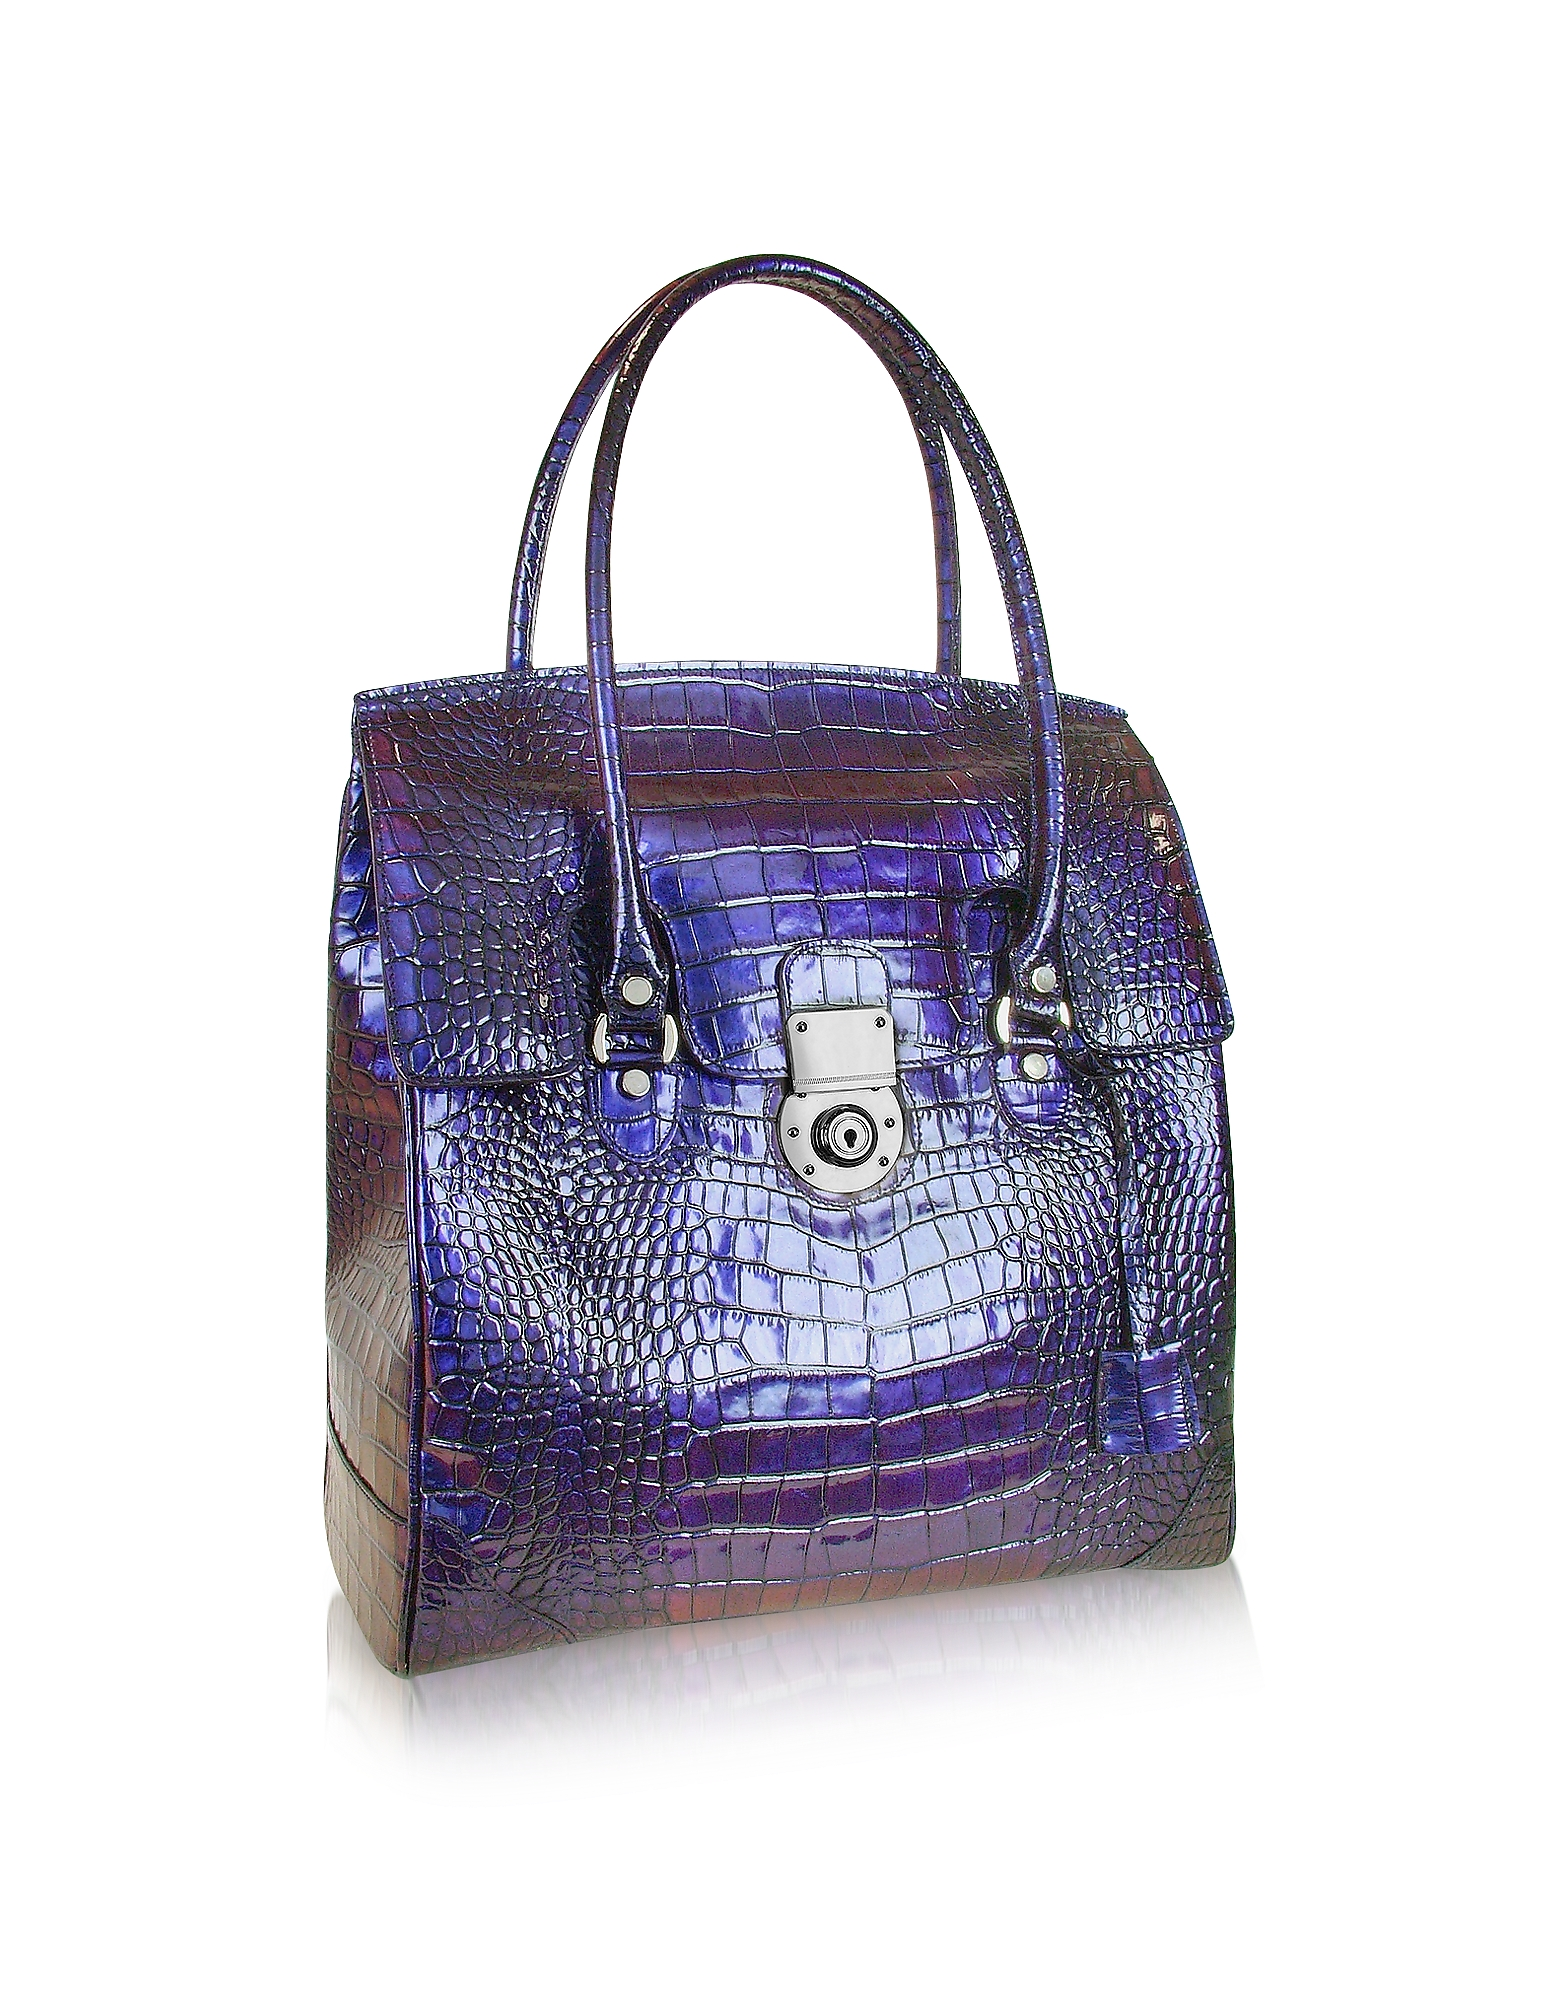 L.A.P.A. Handbags, Croco Stamped Leather Flap Tote Bag